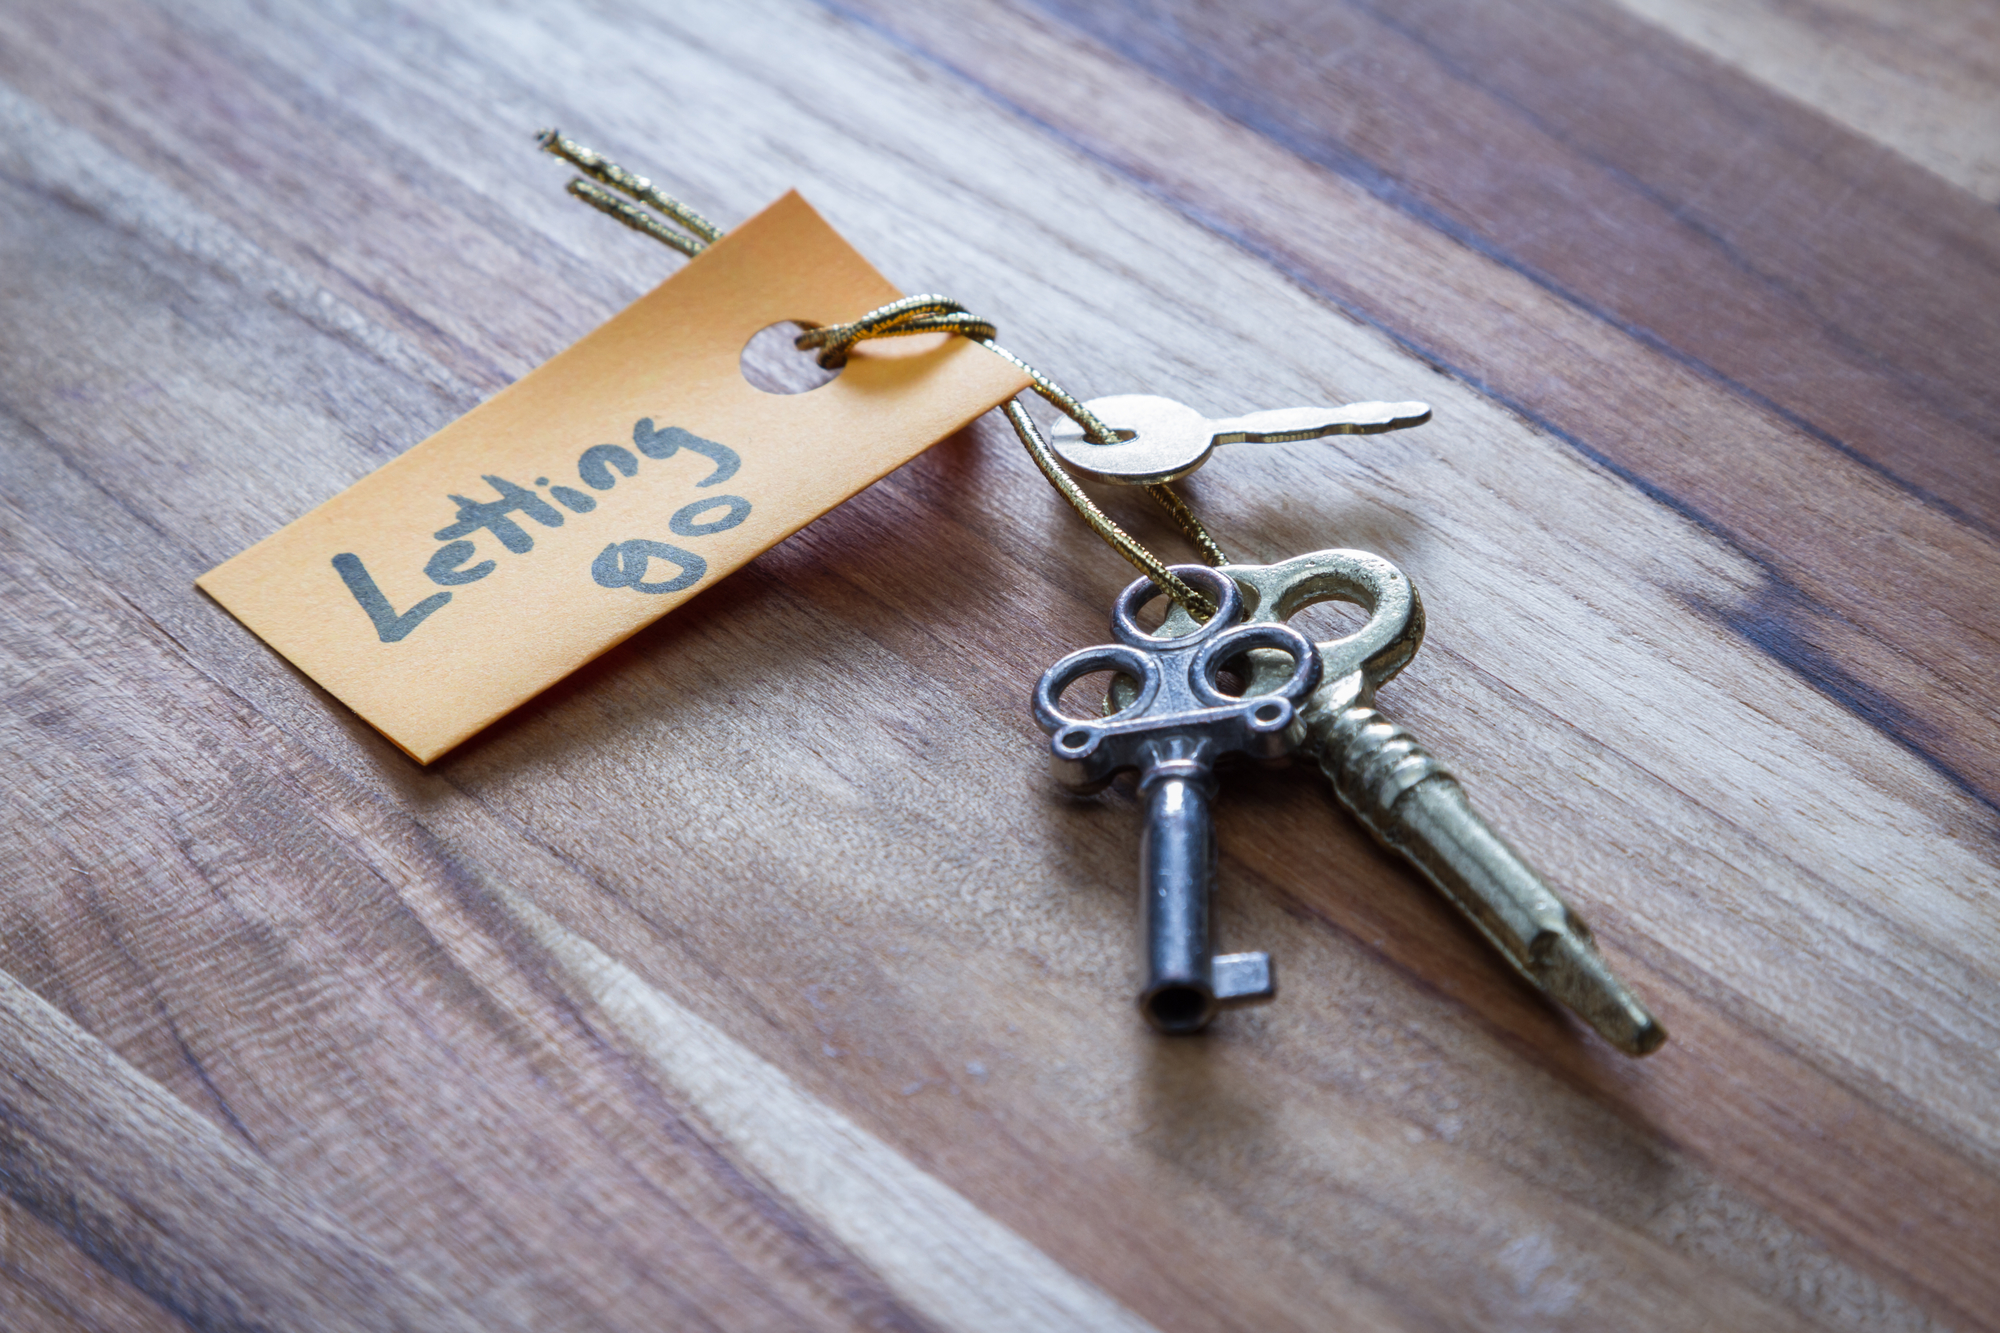 concept for a happy life using old decorative keys and a hand written tag attached by a golden cord